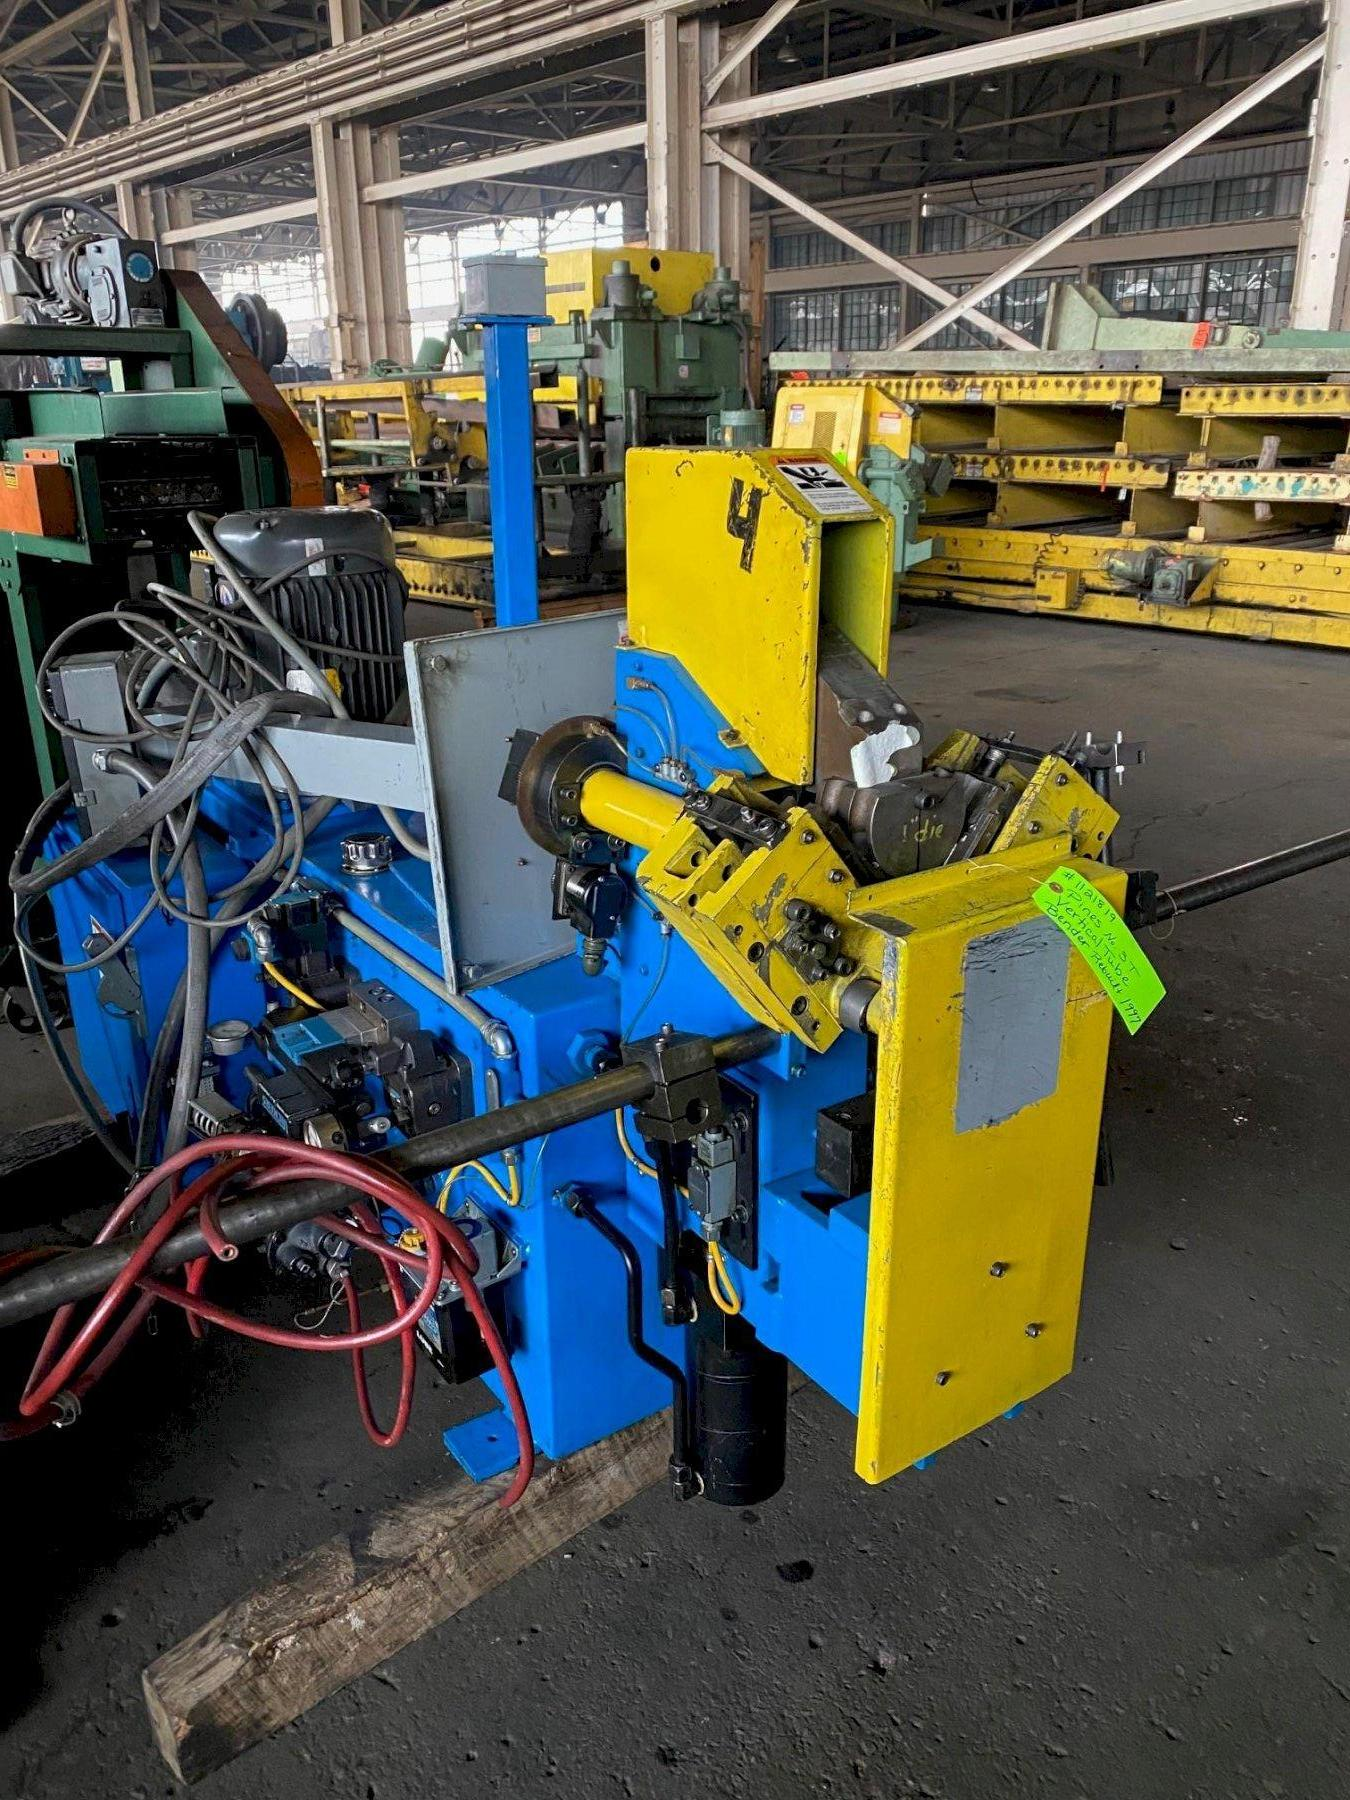 PINES NO . 3T VERTICAL TUBE BENDER(REBUILT 1999) CONTROL A BEND CONTROL. STOCK # 1121819